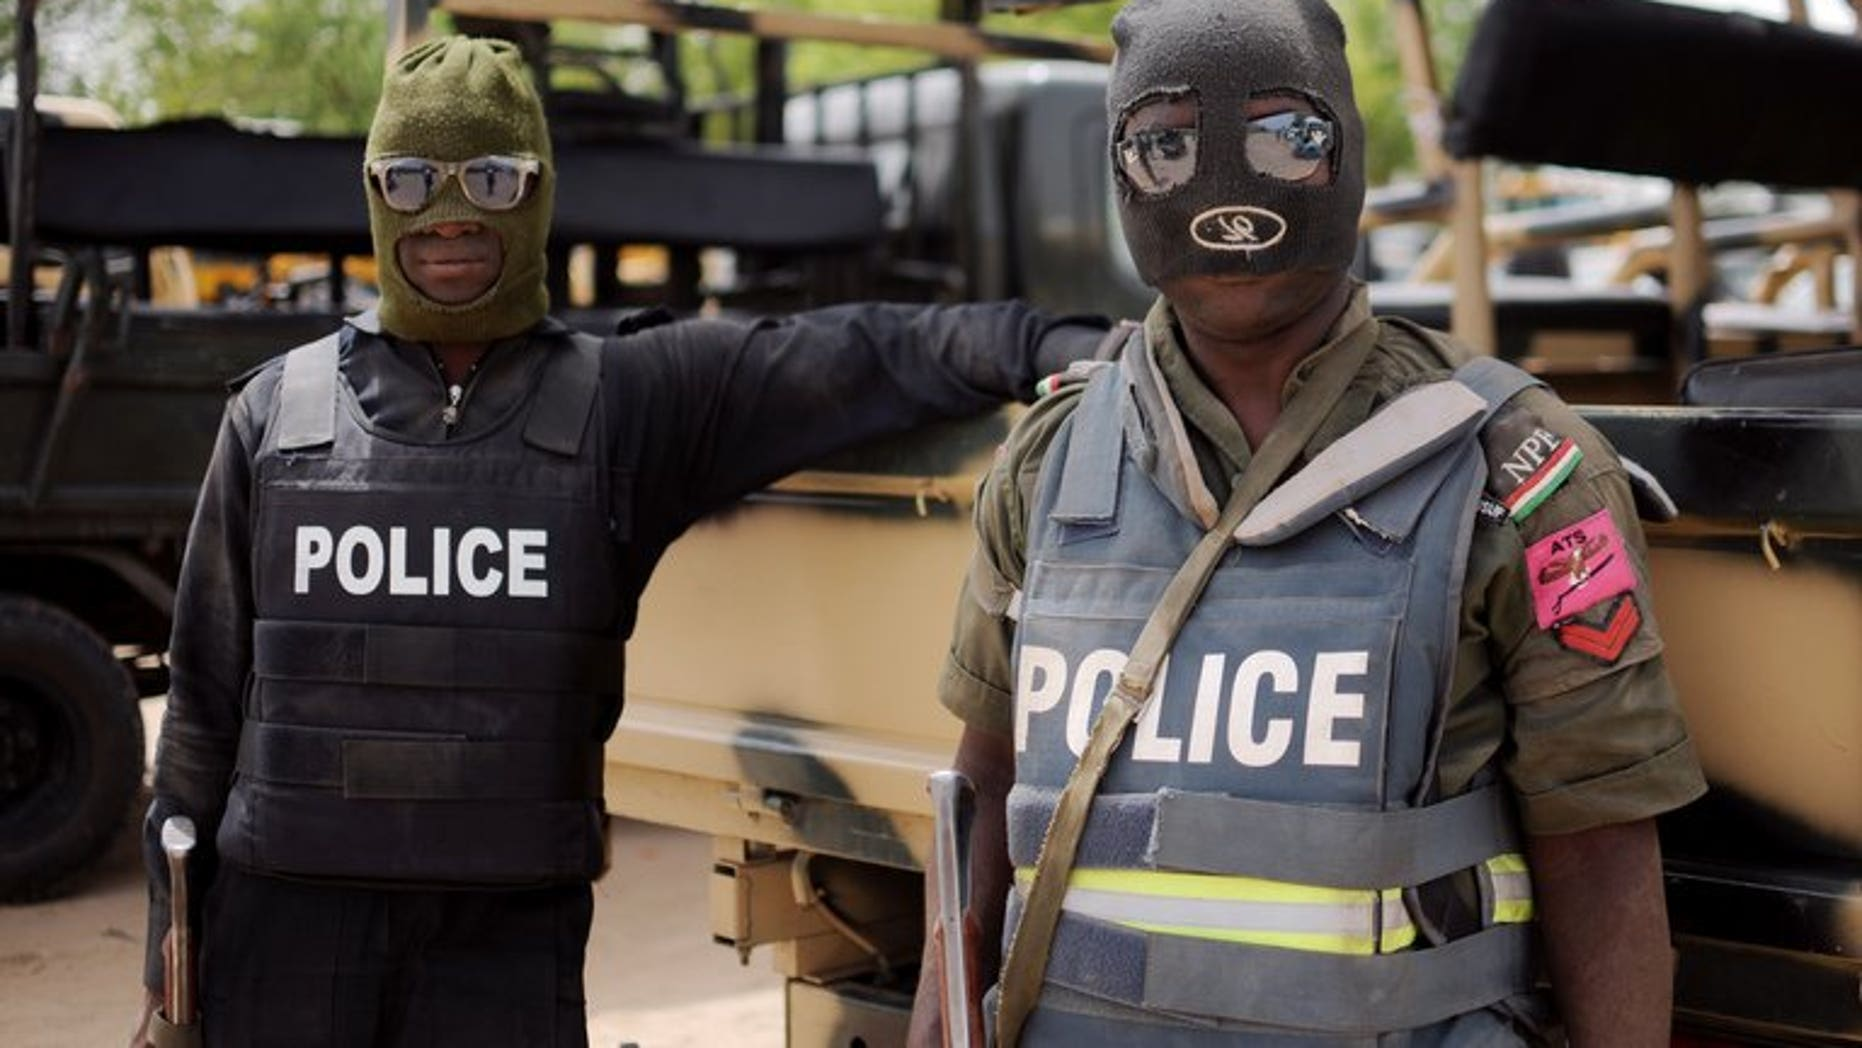 Nigerian police, part of the joint forces in Borno state, pose prior to a patrol in Maiduguri on June 5, 2013. Suspected Boko Haram Islamists have stormed a town in northeast Nigeria, opened fire on police and civilians and killed 11 people, residents and a local lawmaker told AFP Friday.